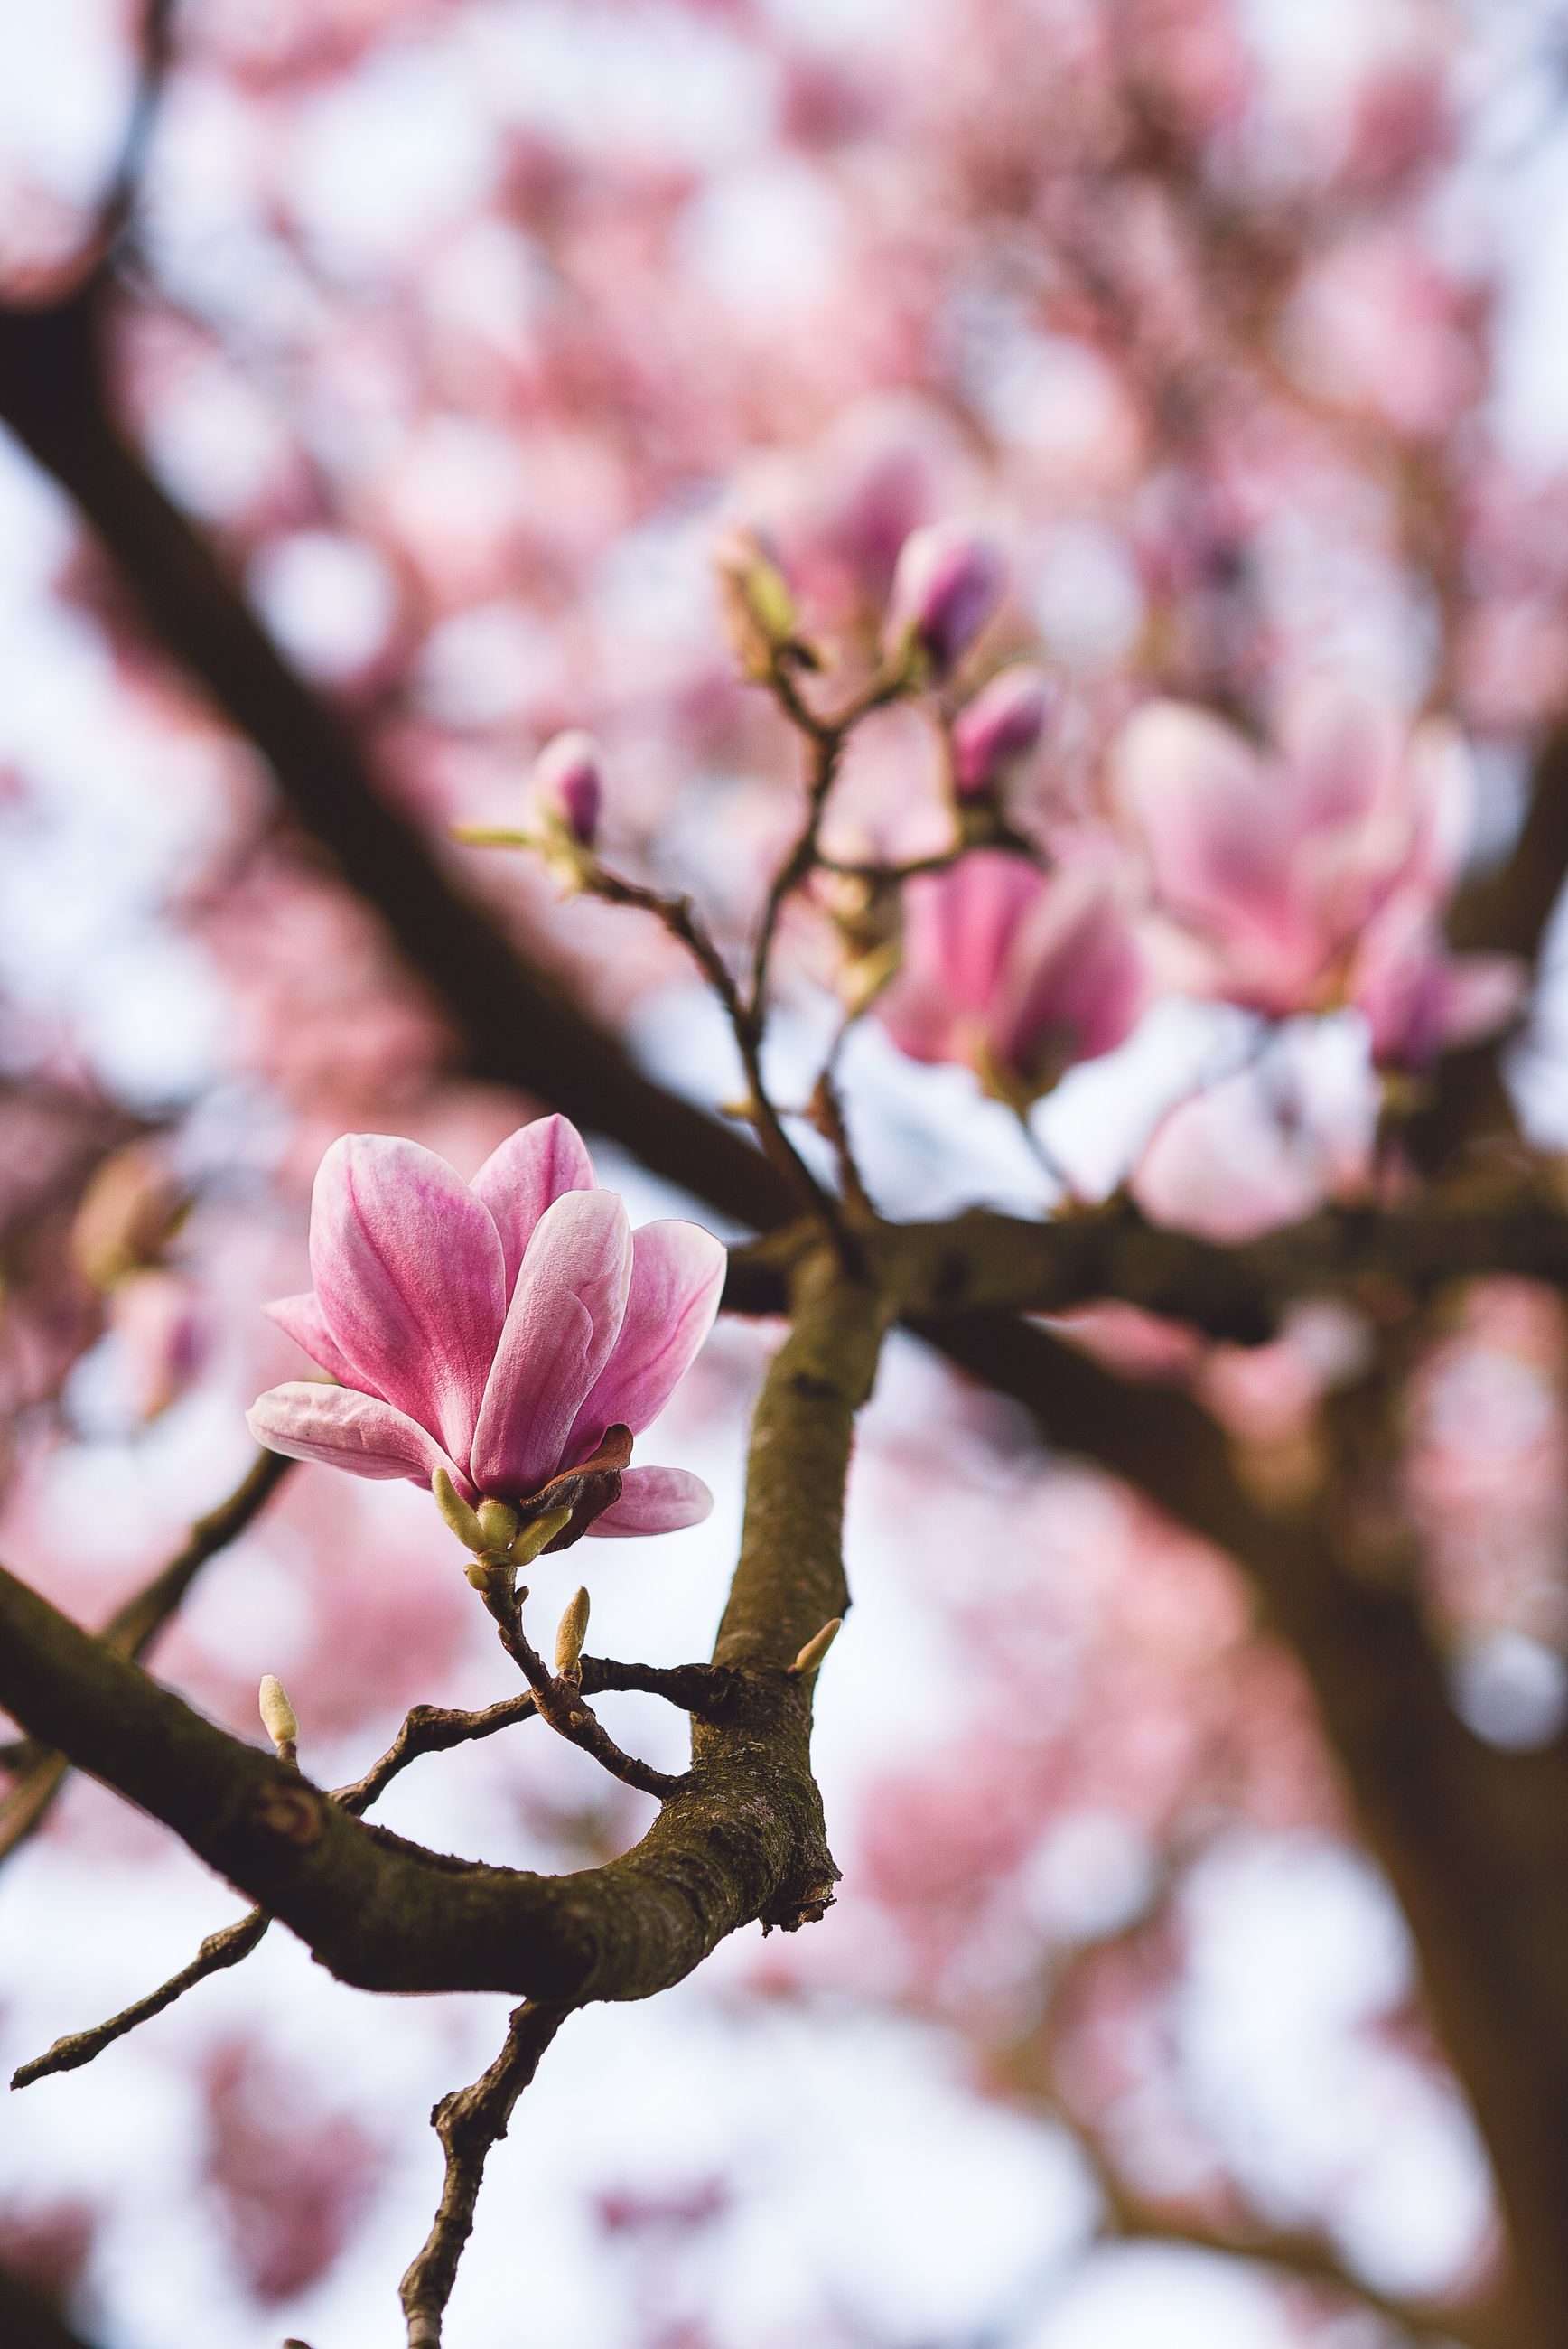 CLOSE-UP OF FRESH PINK CHERRY BLOSSOM ON BRANCH